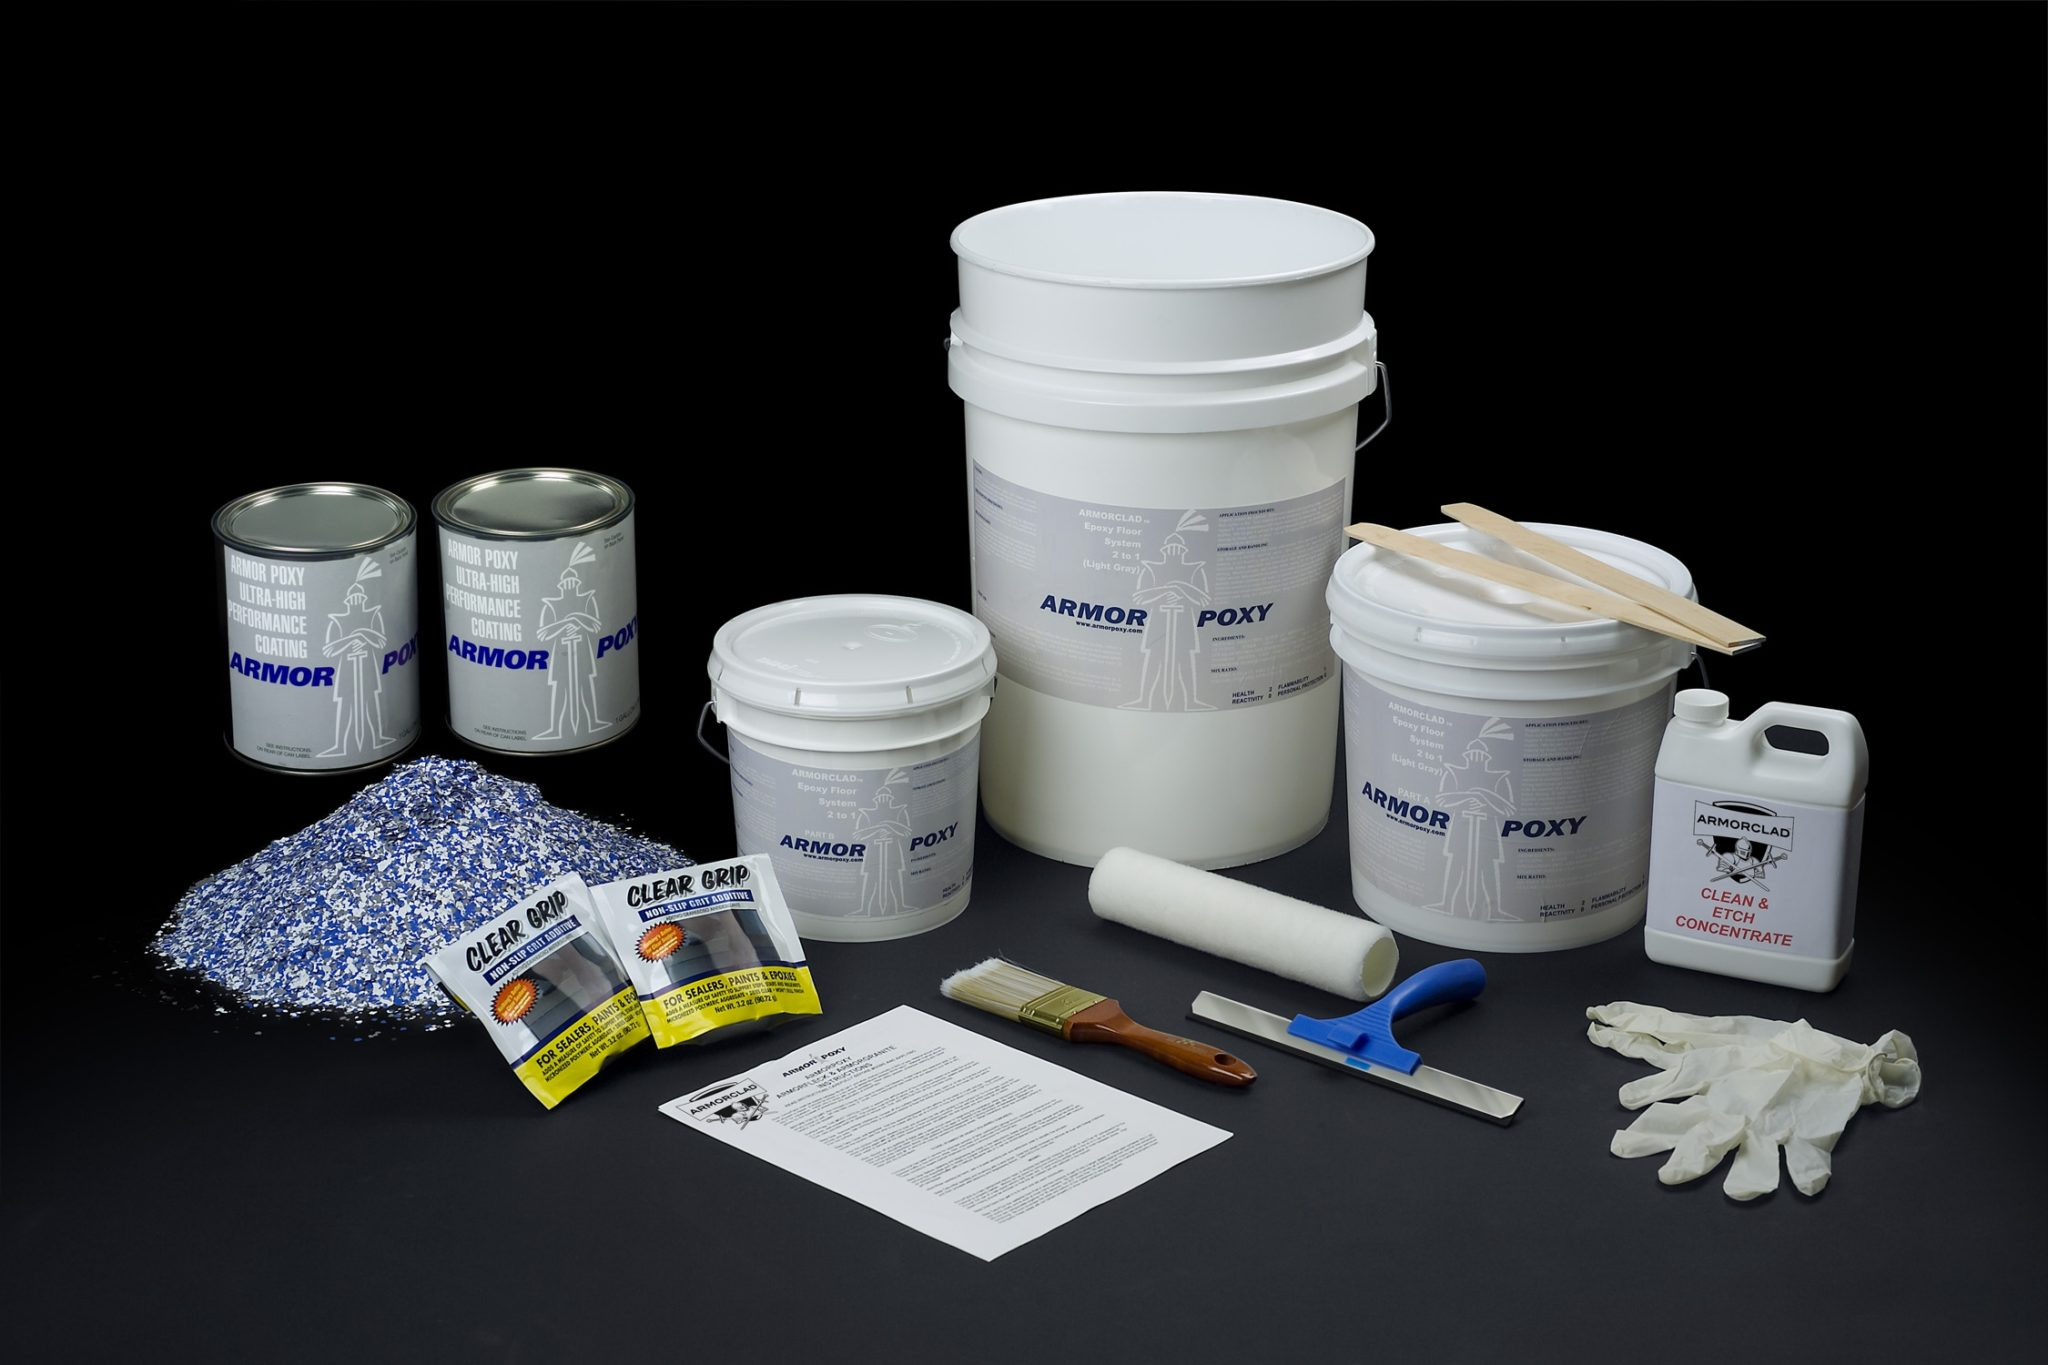 armorclad master kit up to 600 sq ft with topcoat